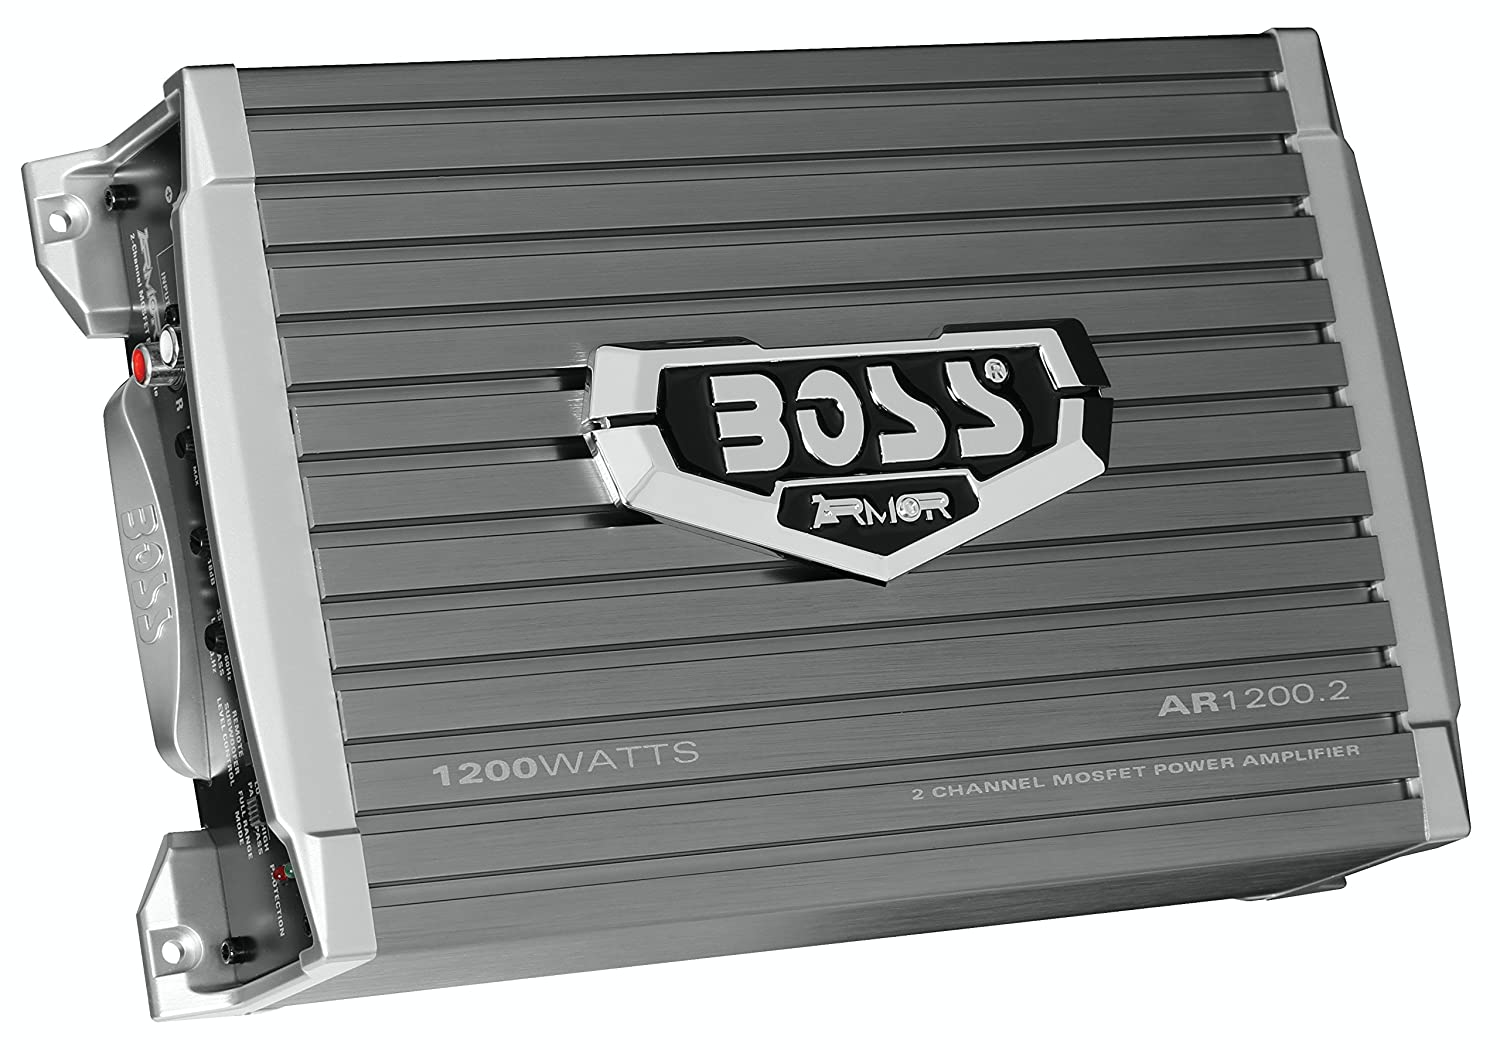 Boss Audio Ar12002 Armor 1200 Watt 2 Channel 4 Ohm Kit2 8 Gauge Complete Amplifier Wiring Kit Pair Vminnovations Stable Class A B Full Range Bridgeable Mosfet Car With Remote Subwoofer